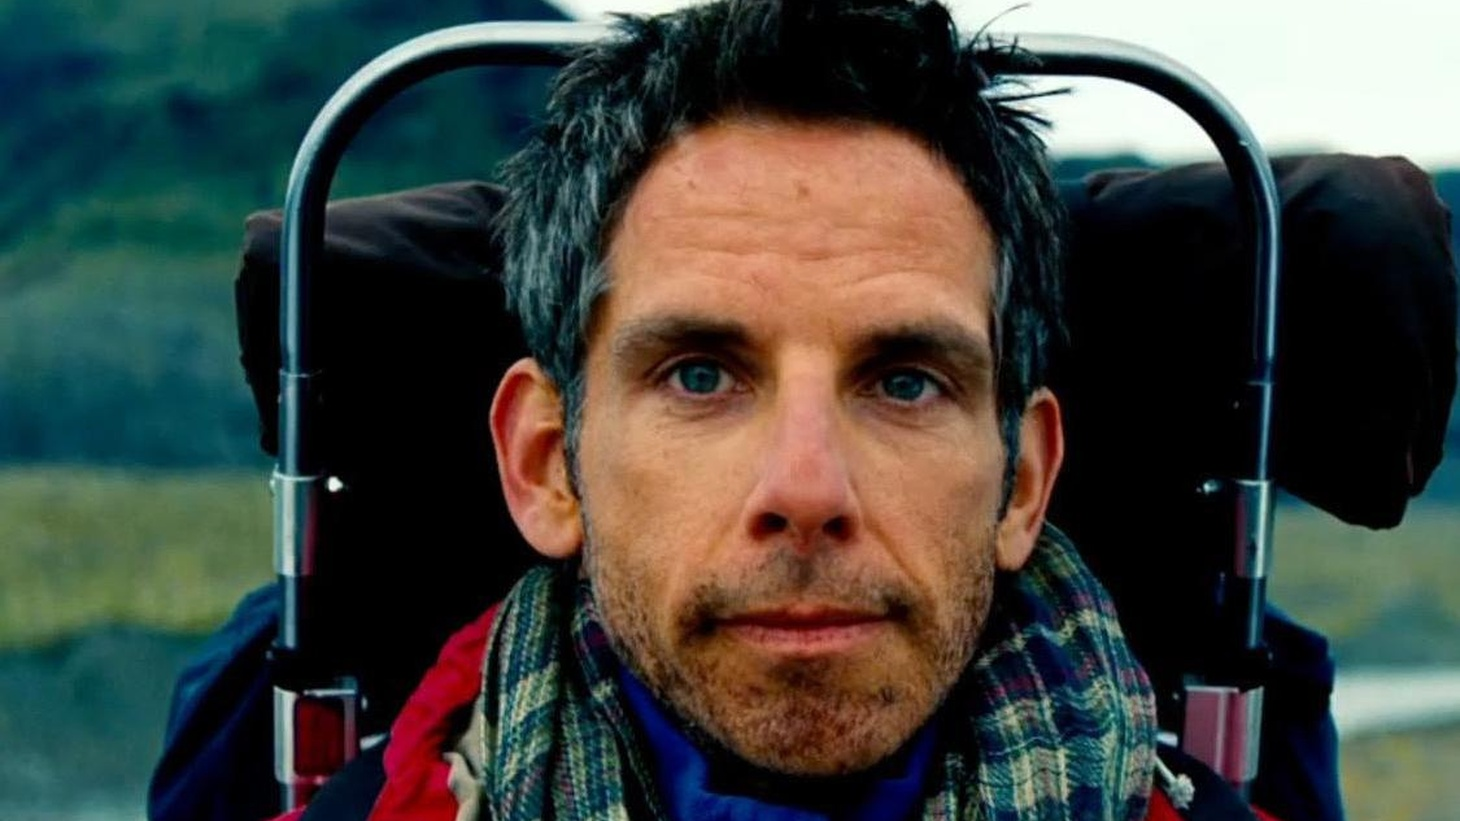 Actor and director Ben Stiller takes a personal approach to the soundtrack of his new film The Secret Life of Walter Mitty.